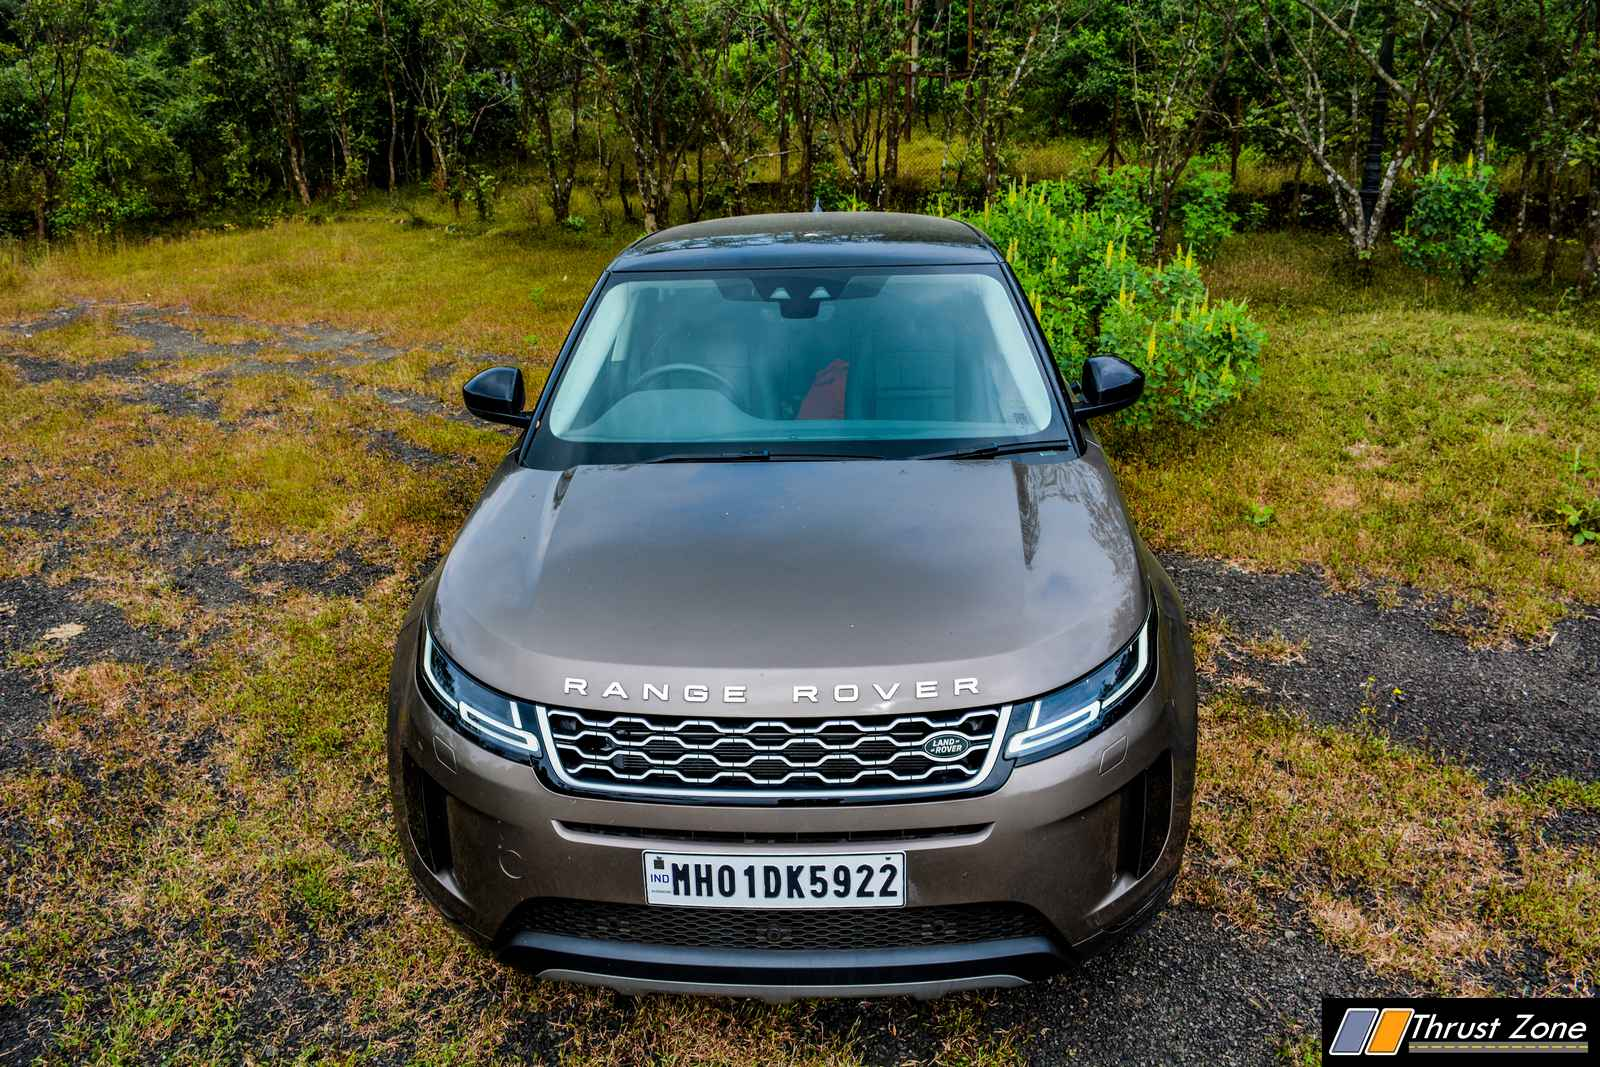 2020-Range-Rover-Evoque-Diesel-India-Review-11